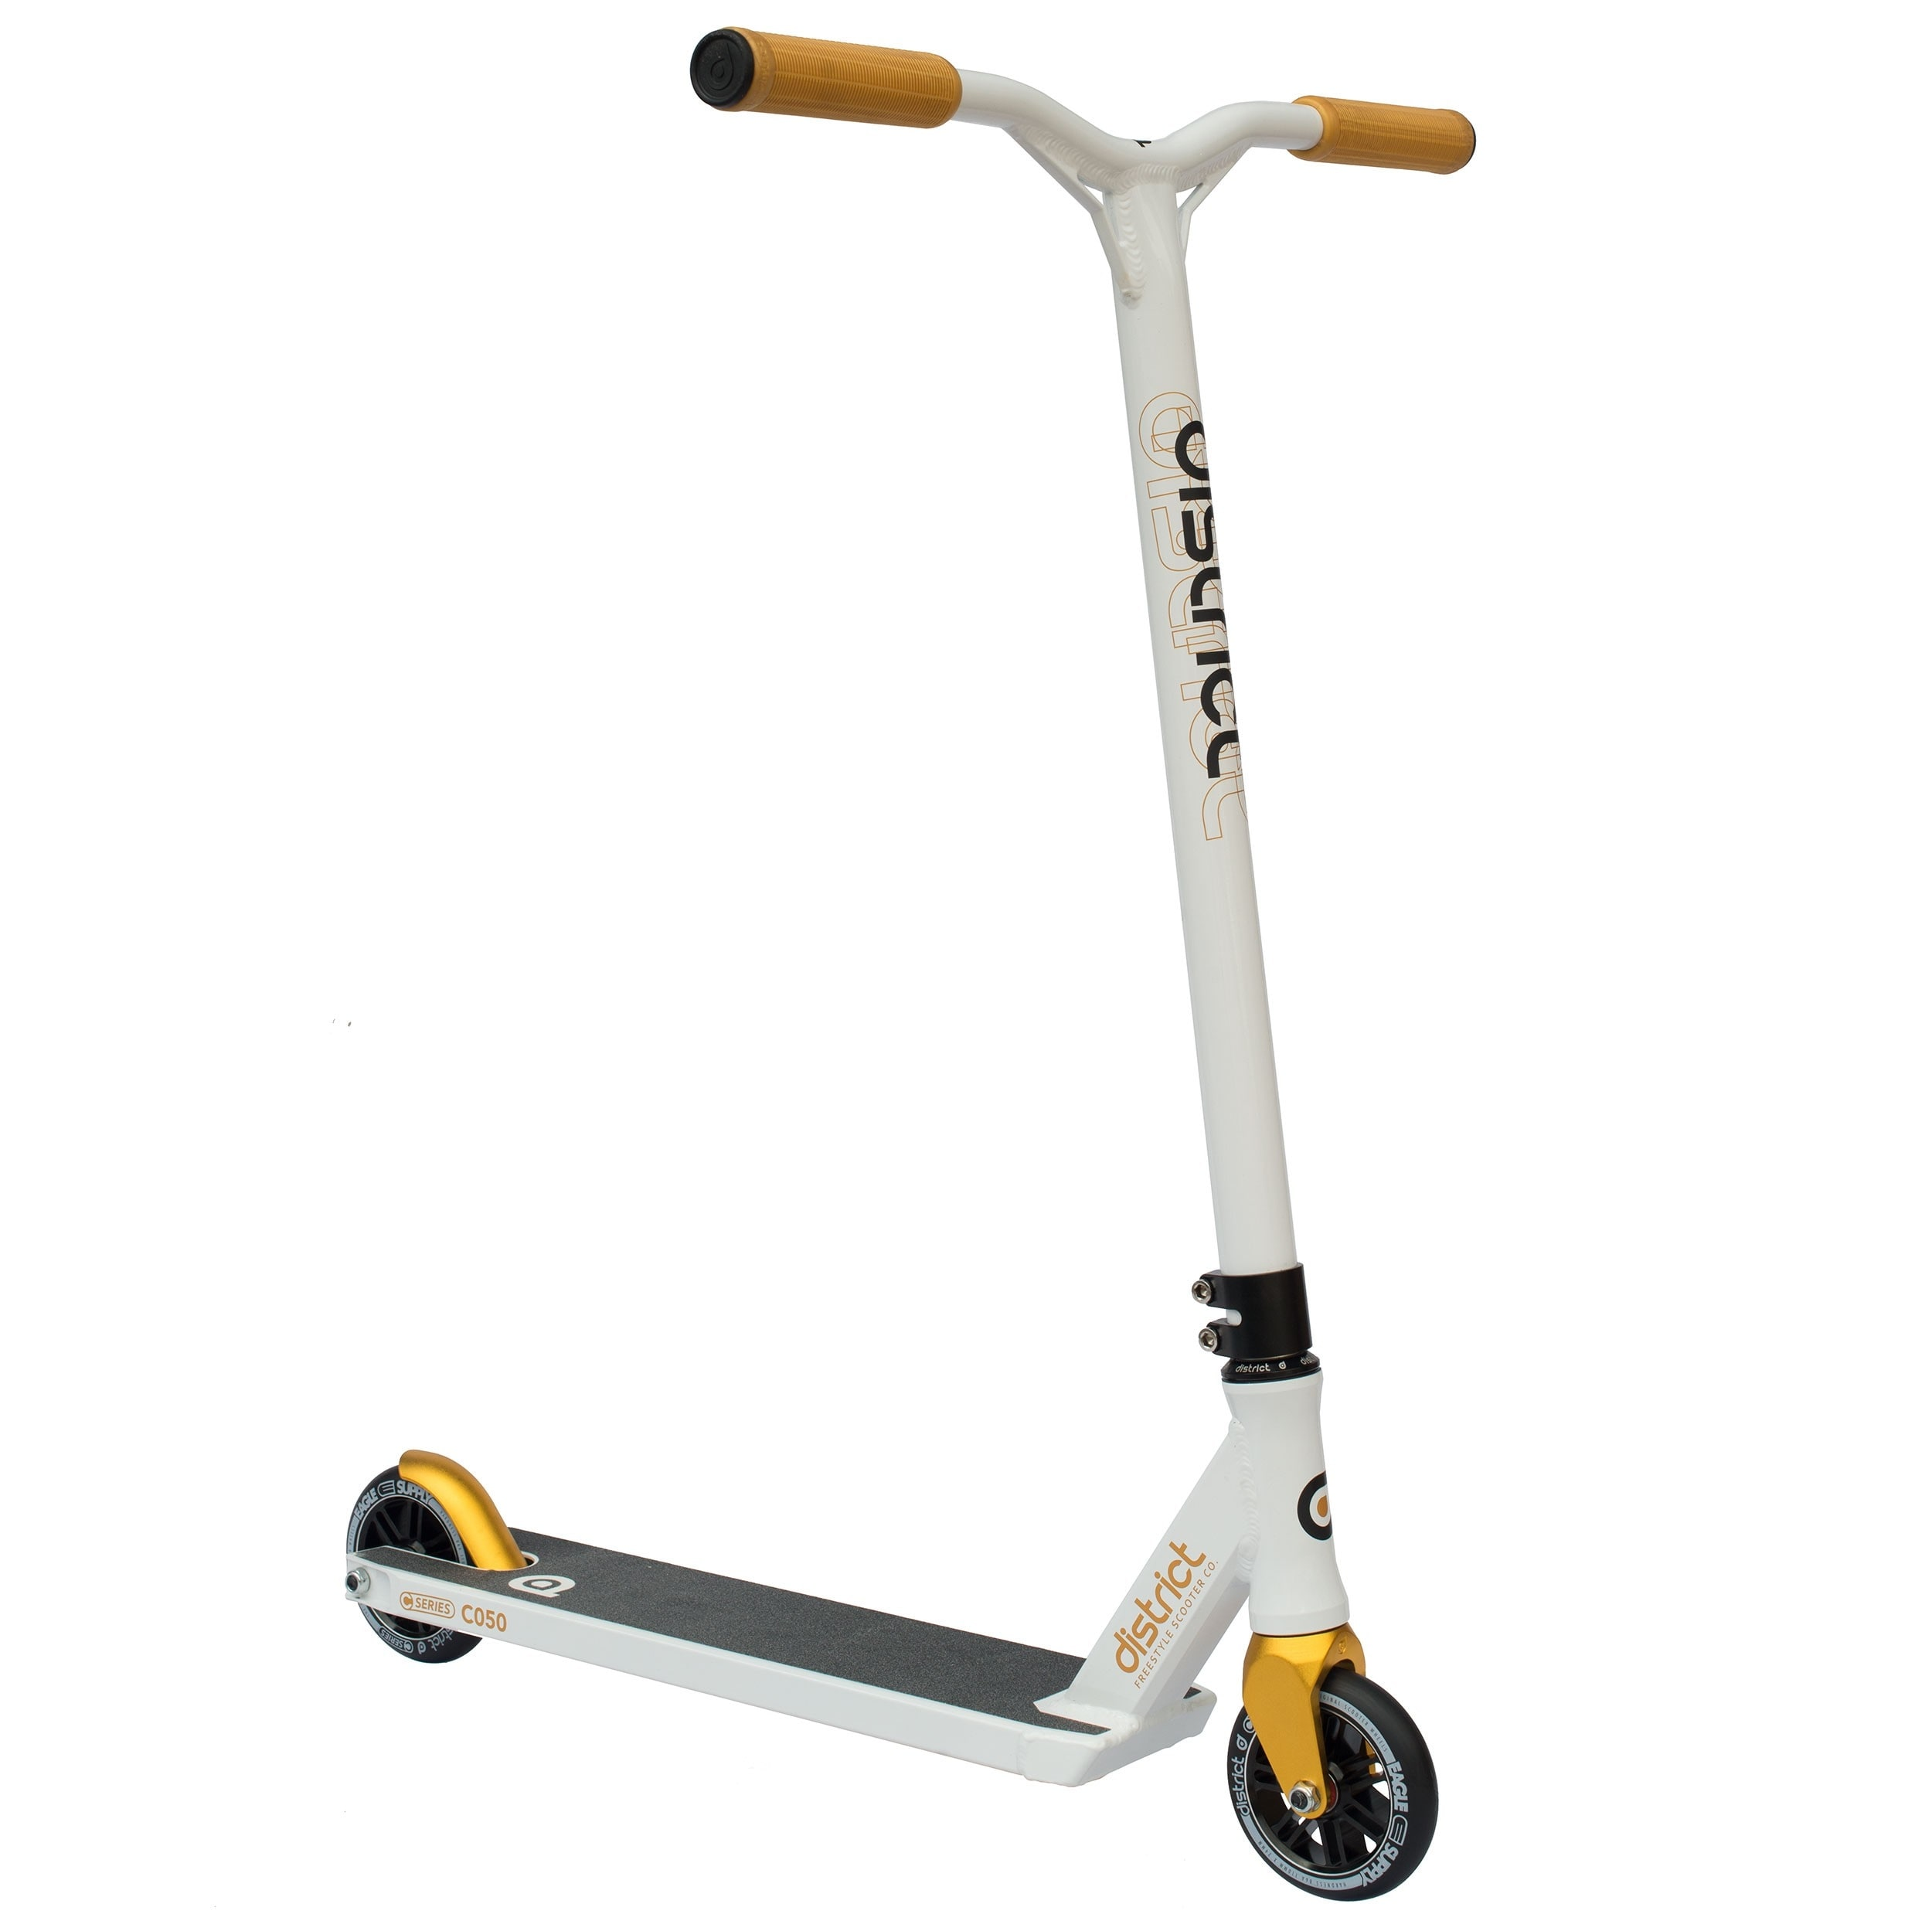 Image of District 2017 C-Series C050 Complete Scooter - White/Gold